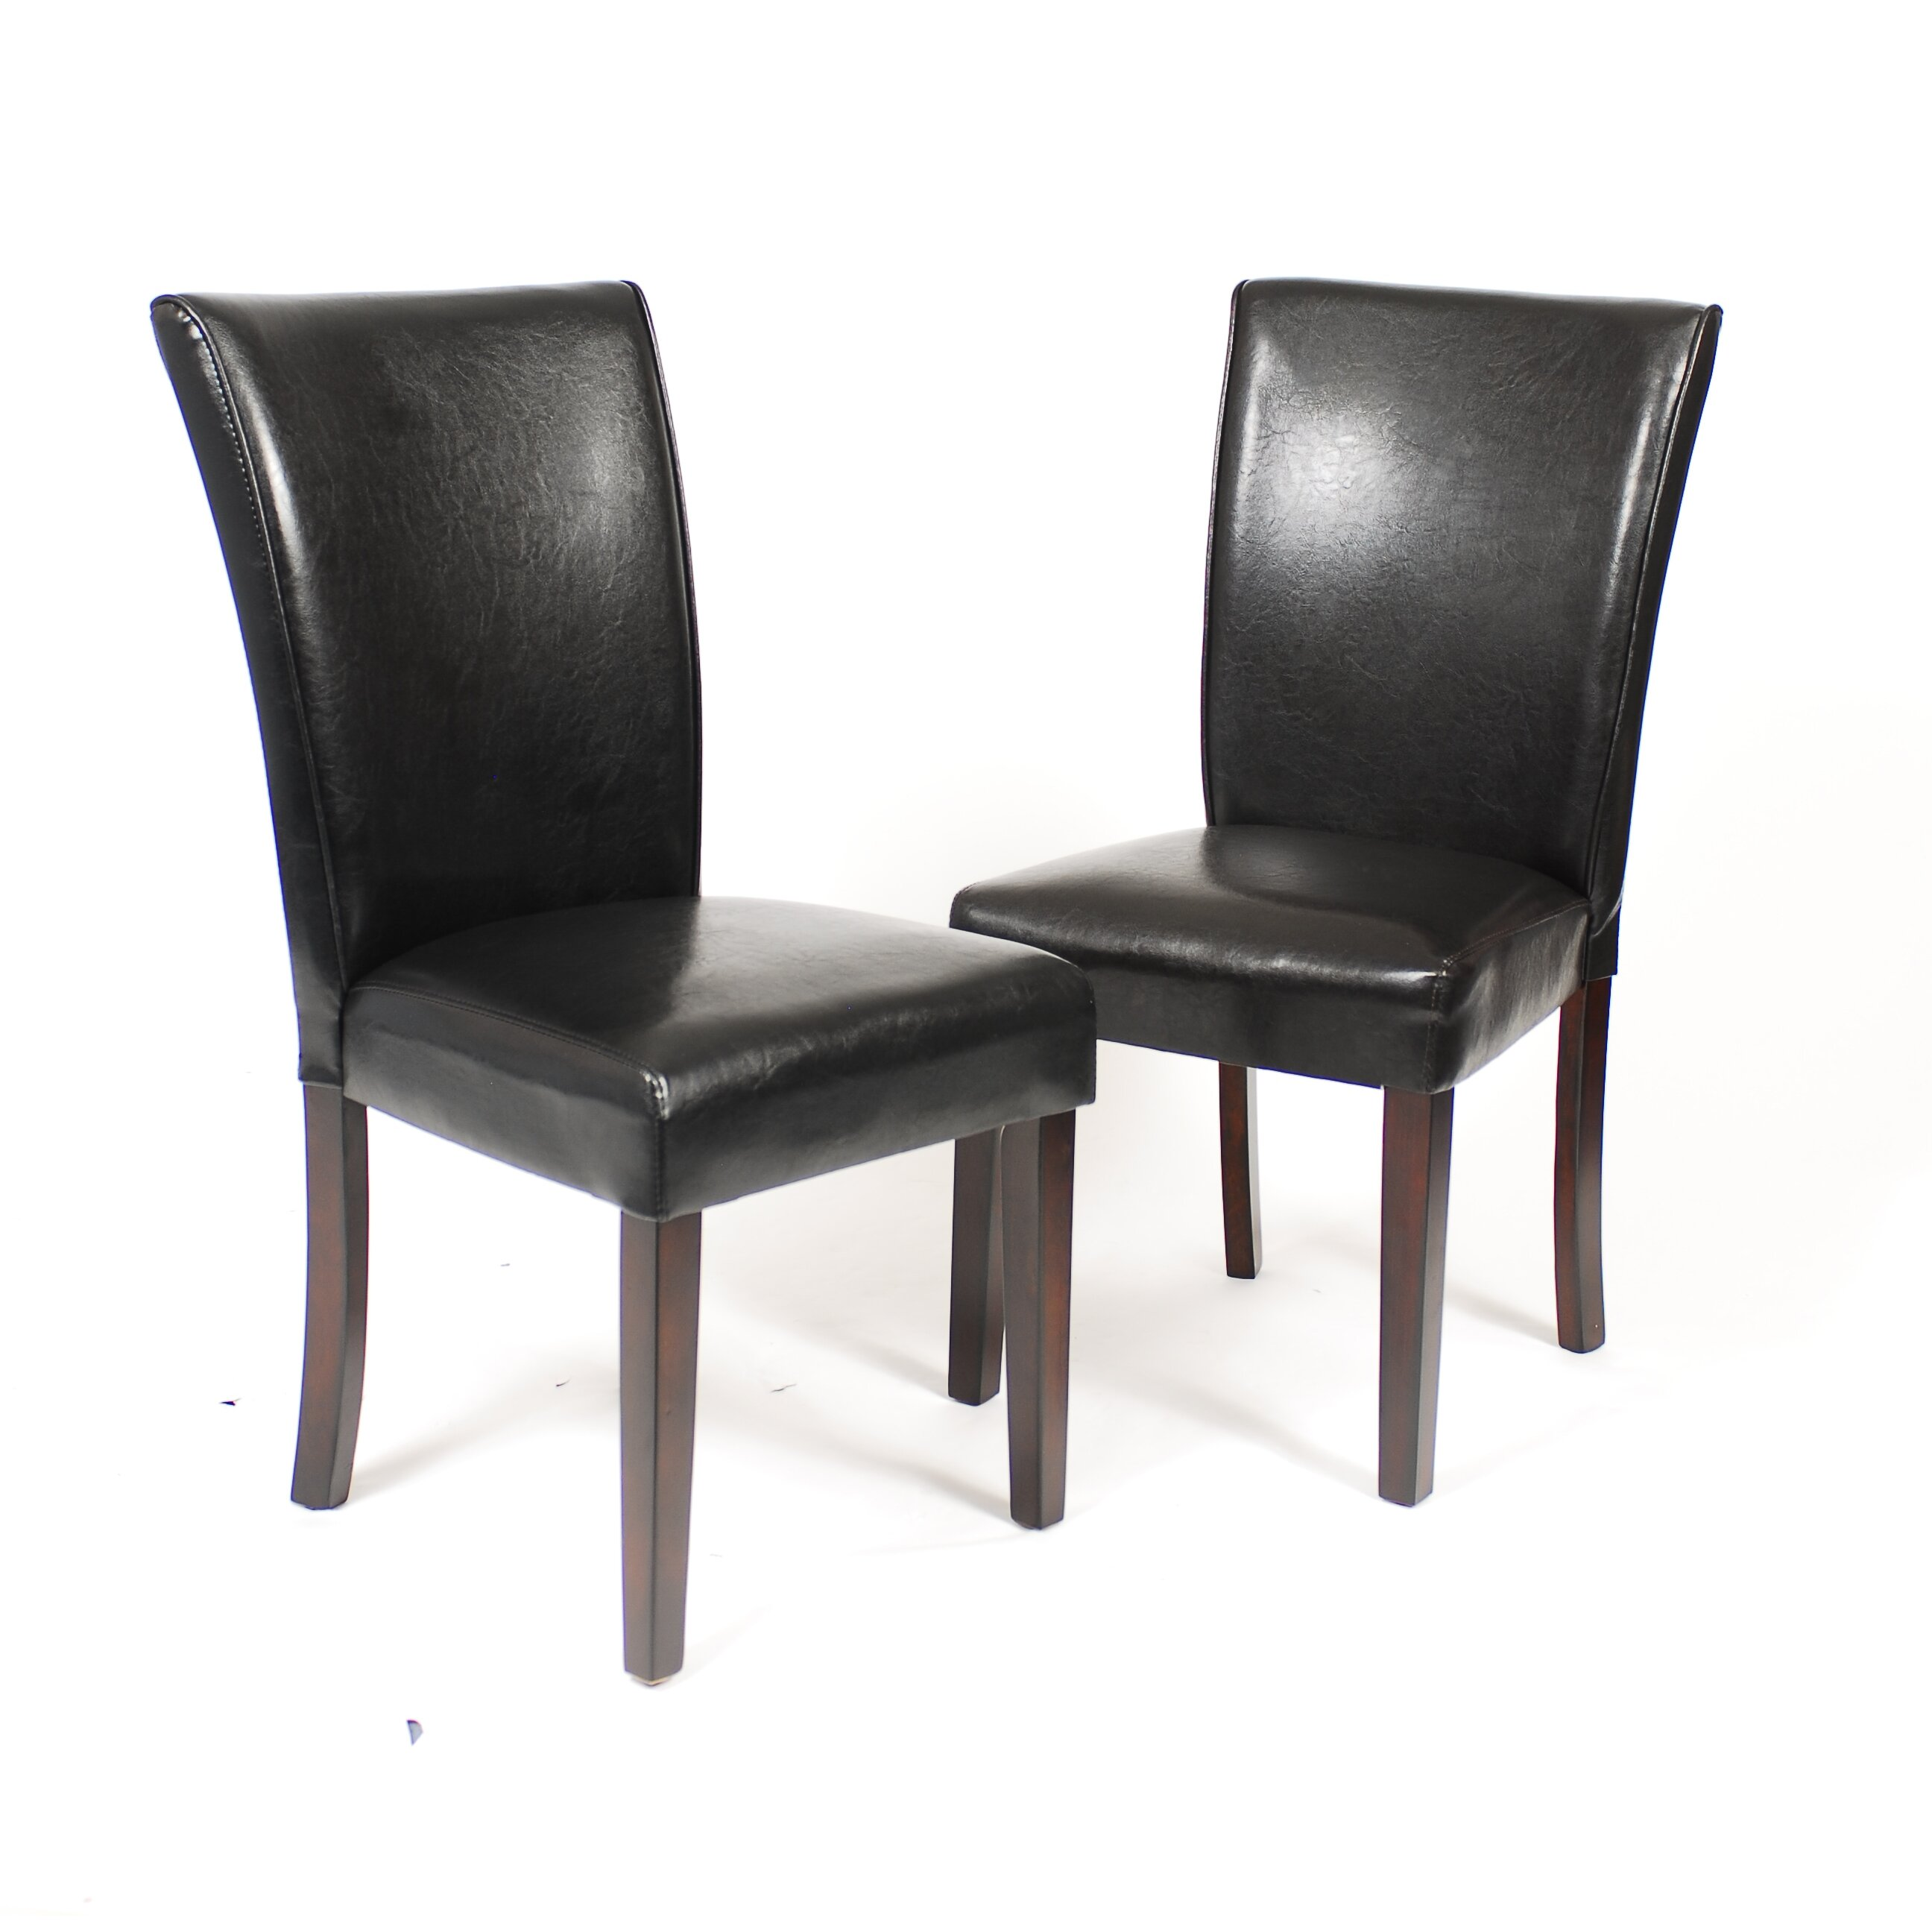 Black Leatherette Dining Room Chair